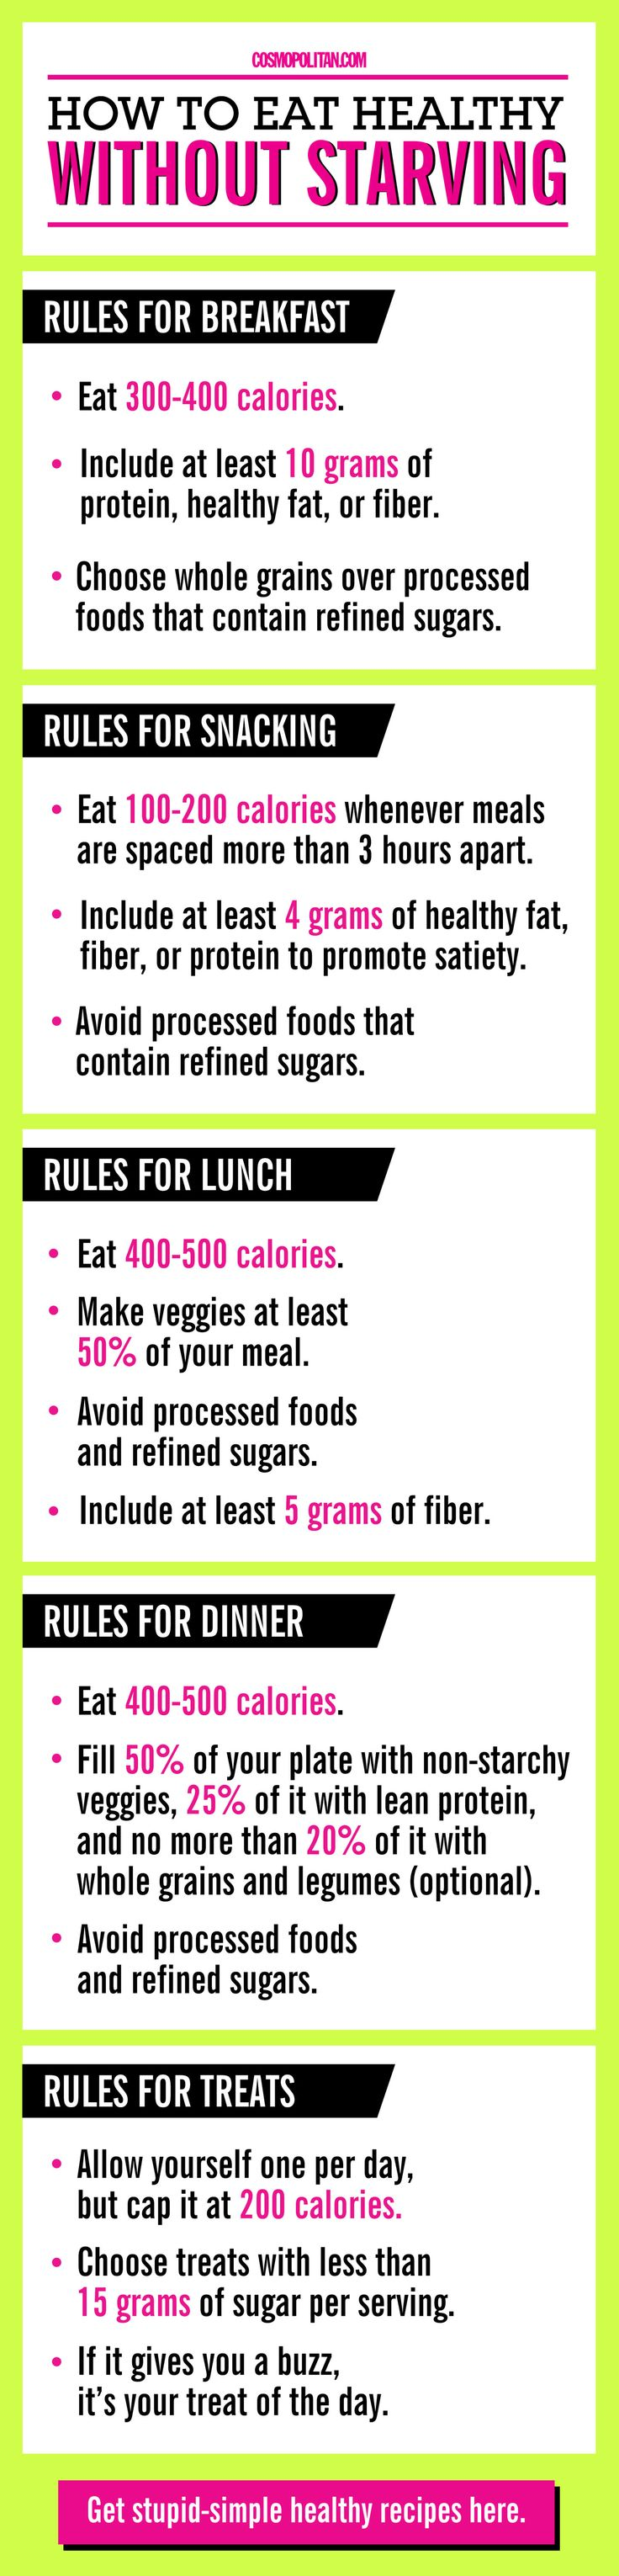 16 Healthy Eating Rules You Should Always Follow  - Delish.com